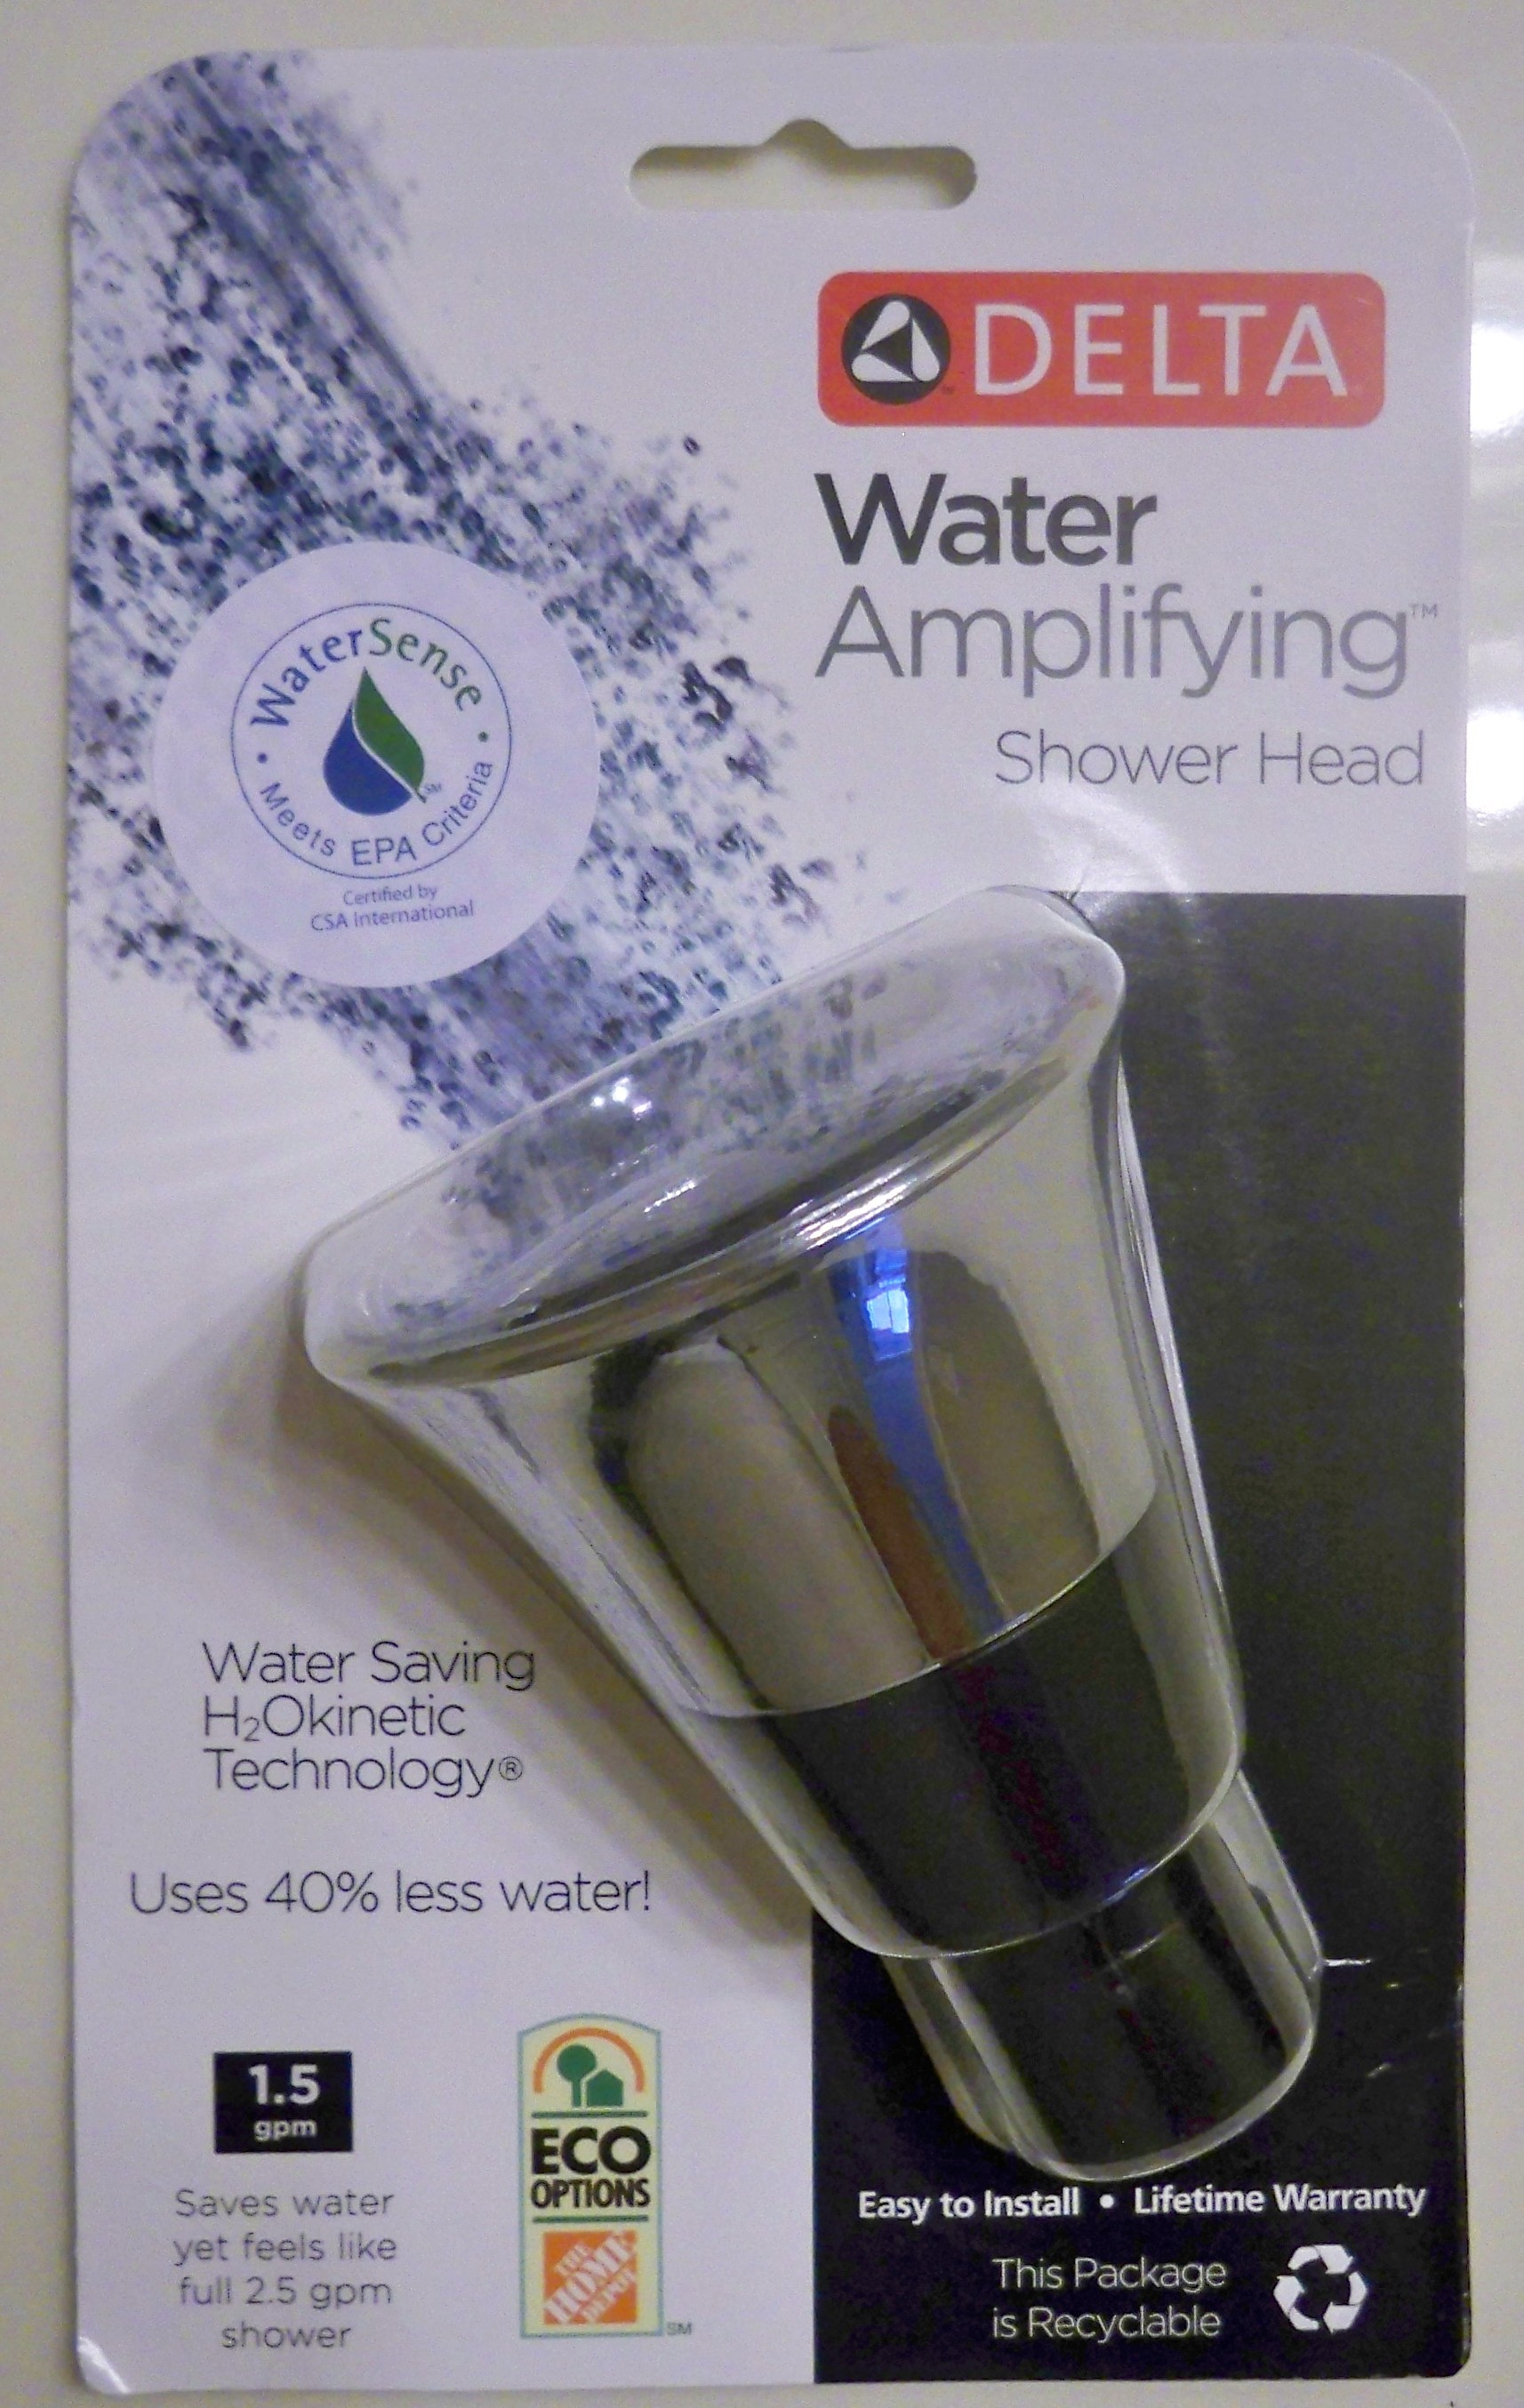 Free Low Flow Showerheads And Faucet Aerators For Centerpoint Customers Ins